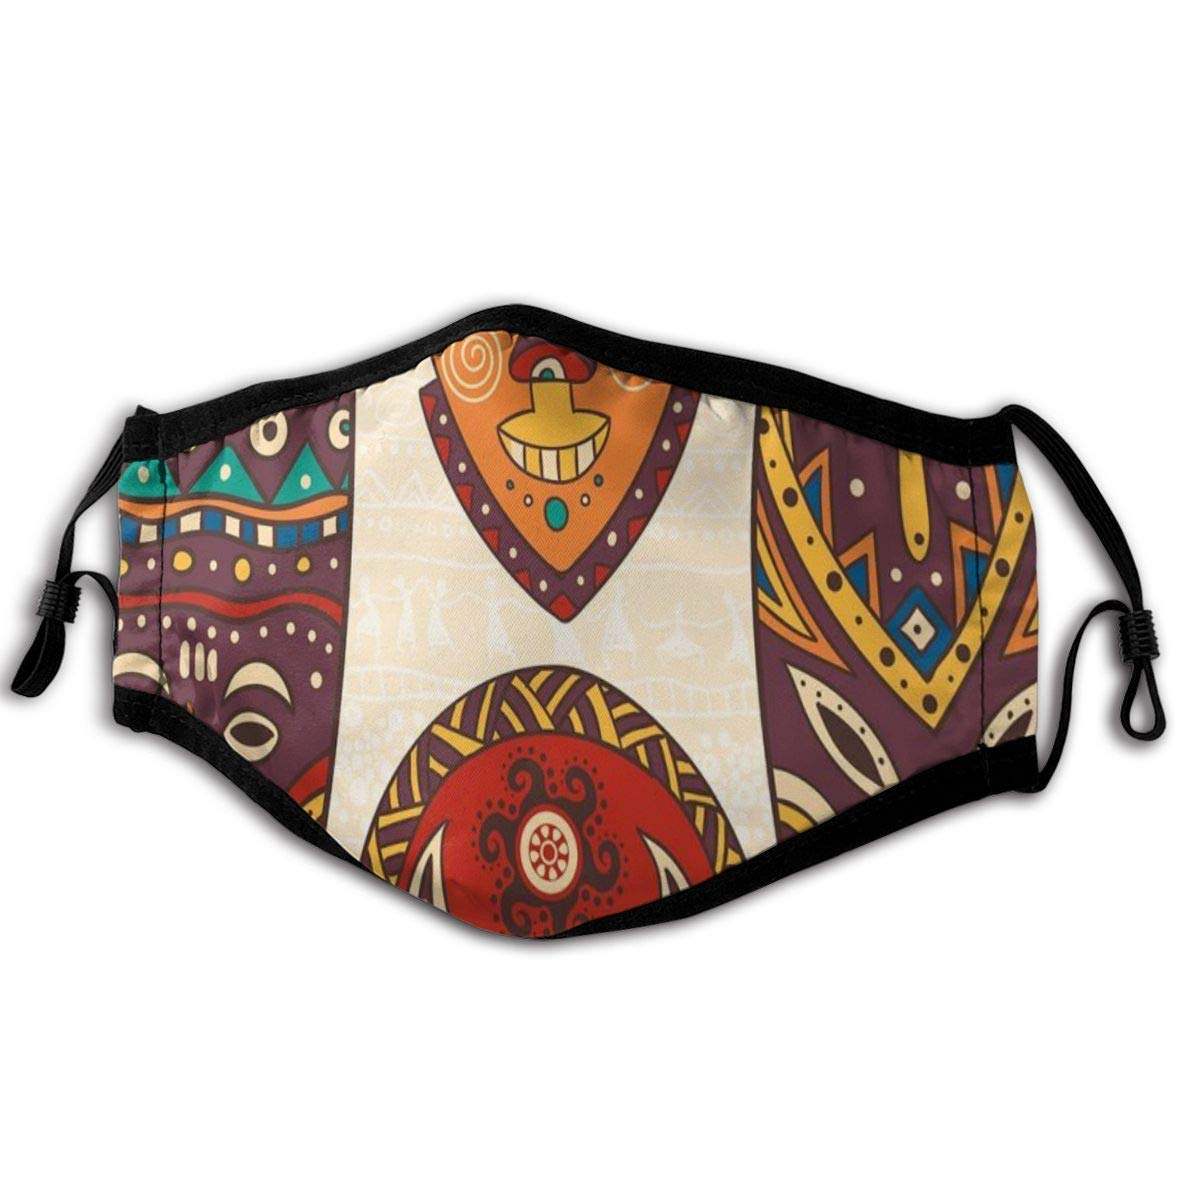 Comfortable Windproof mask,Mask Designs African Aborigine Artwork Patterns Cultural Ethnic Hawaiian Print,Printed Facial decorations for adult